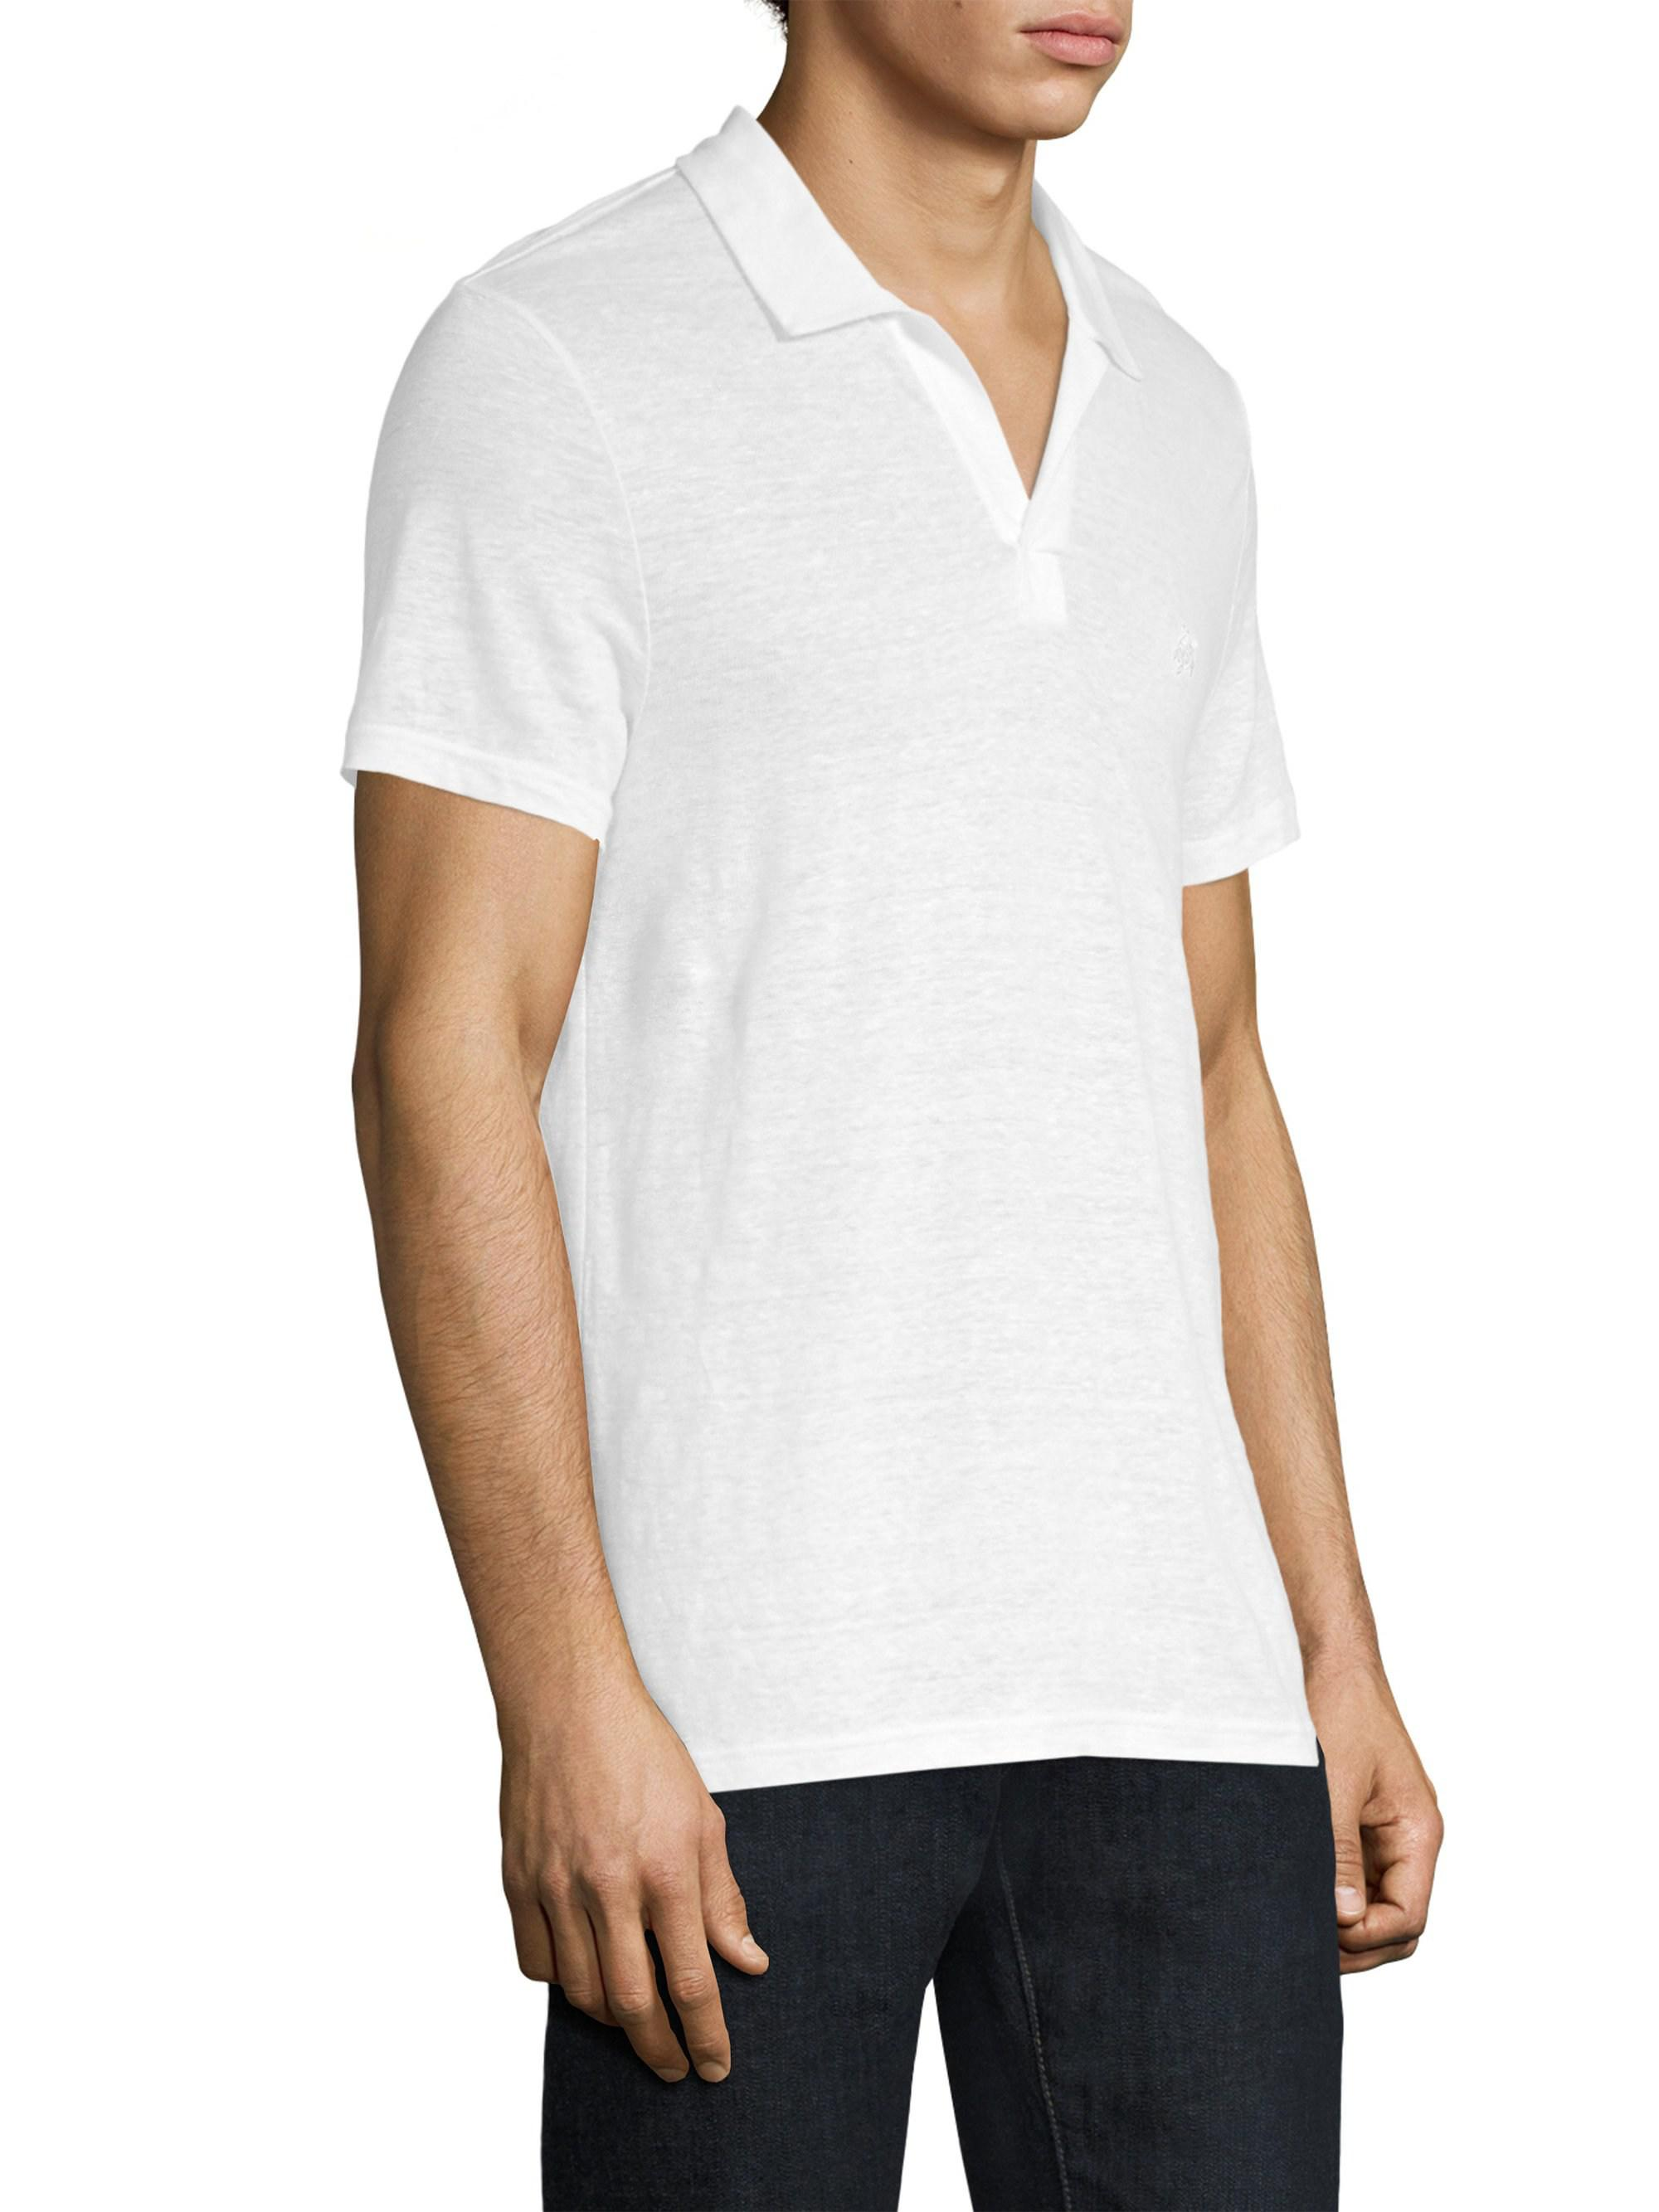 Lyst Vilebrequin Pyramid Linen Polo Shirt In White For Men